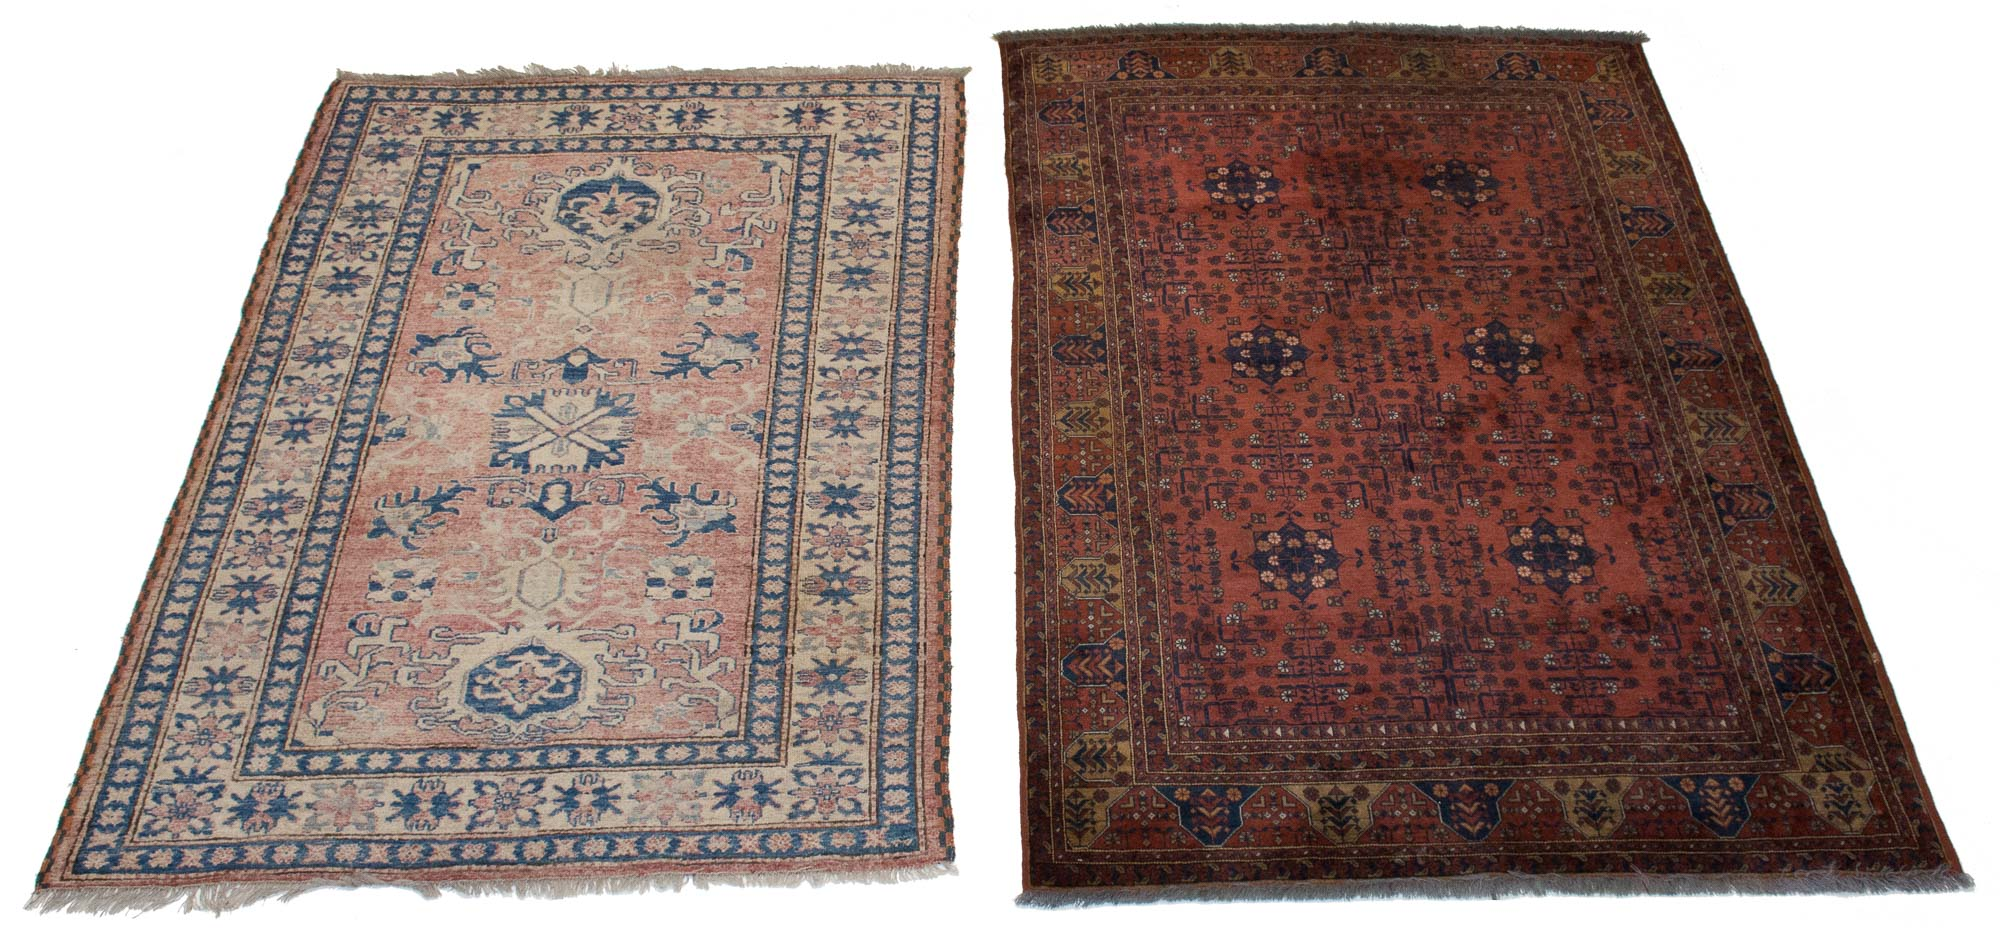 Lot image - Two Afghan Rugs